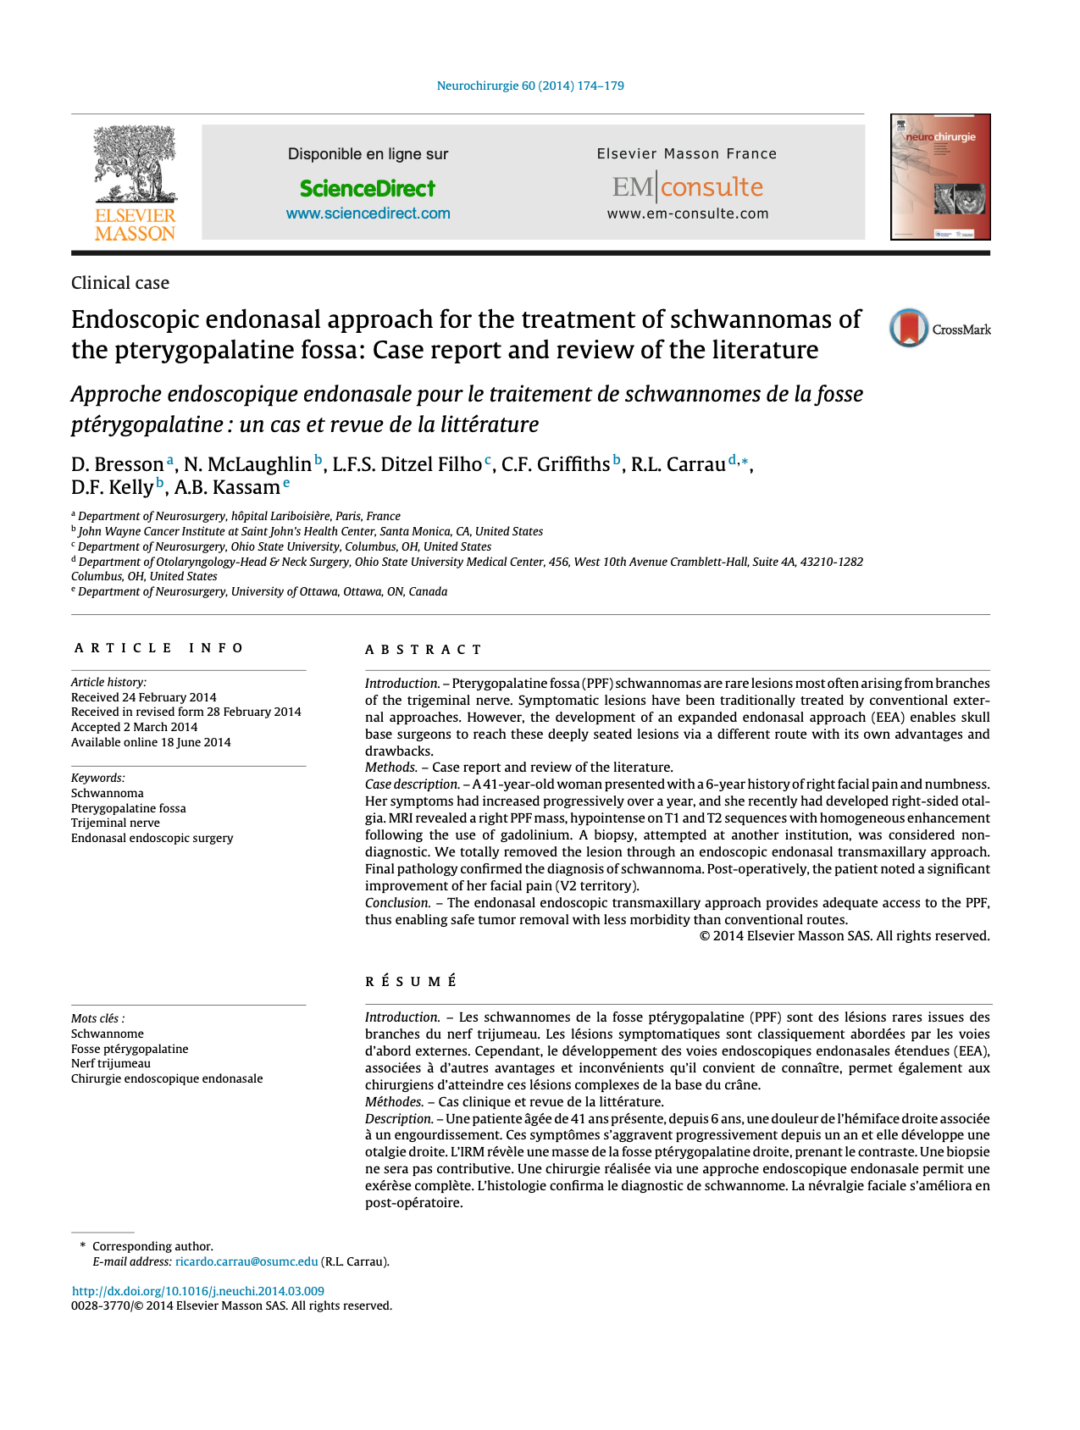 Endoscopic endonasal approach for the treatment of schwannomas of the pterygopalatine fossa: Case report and review of the literature